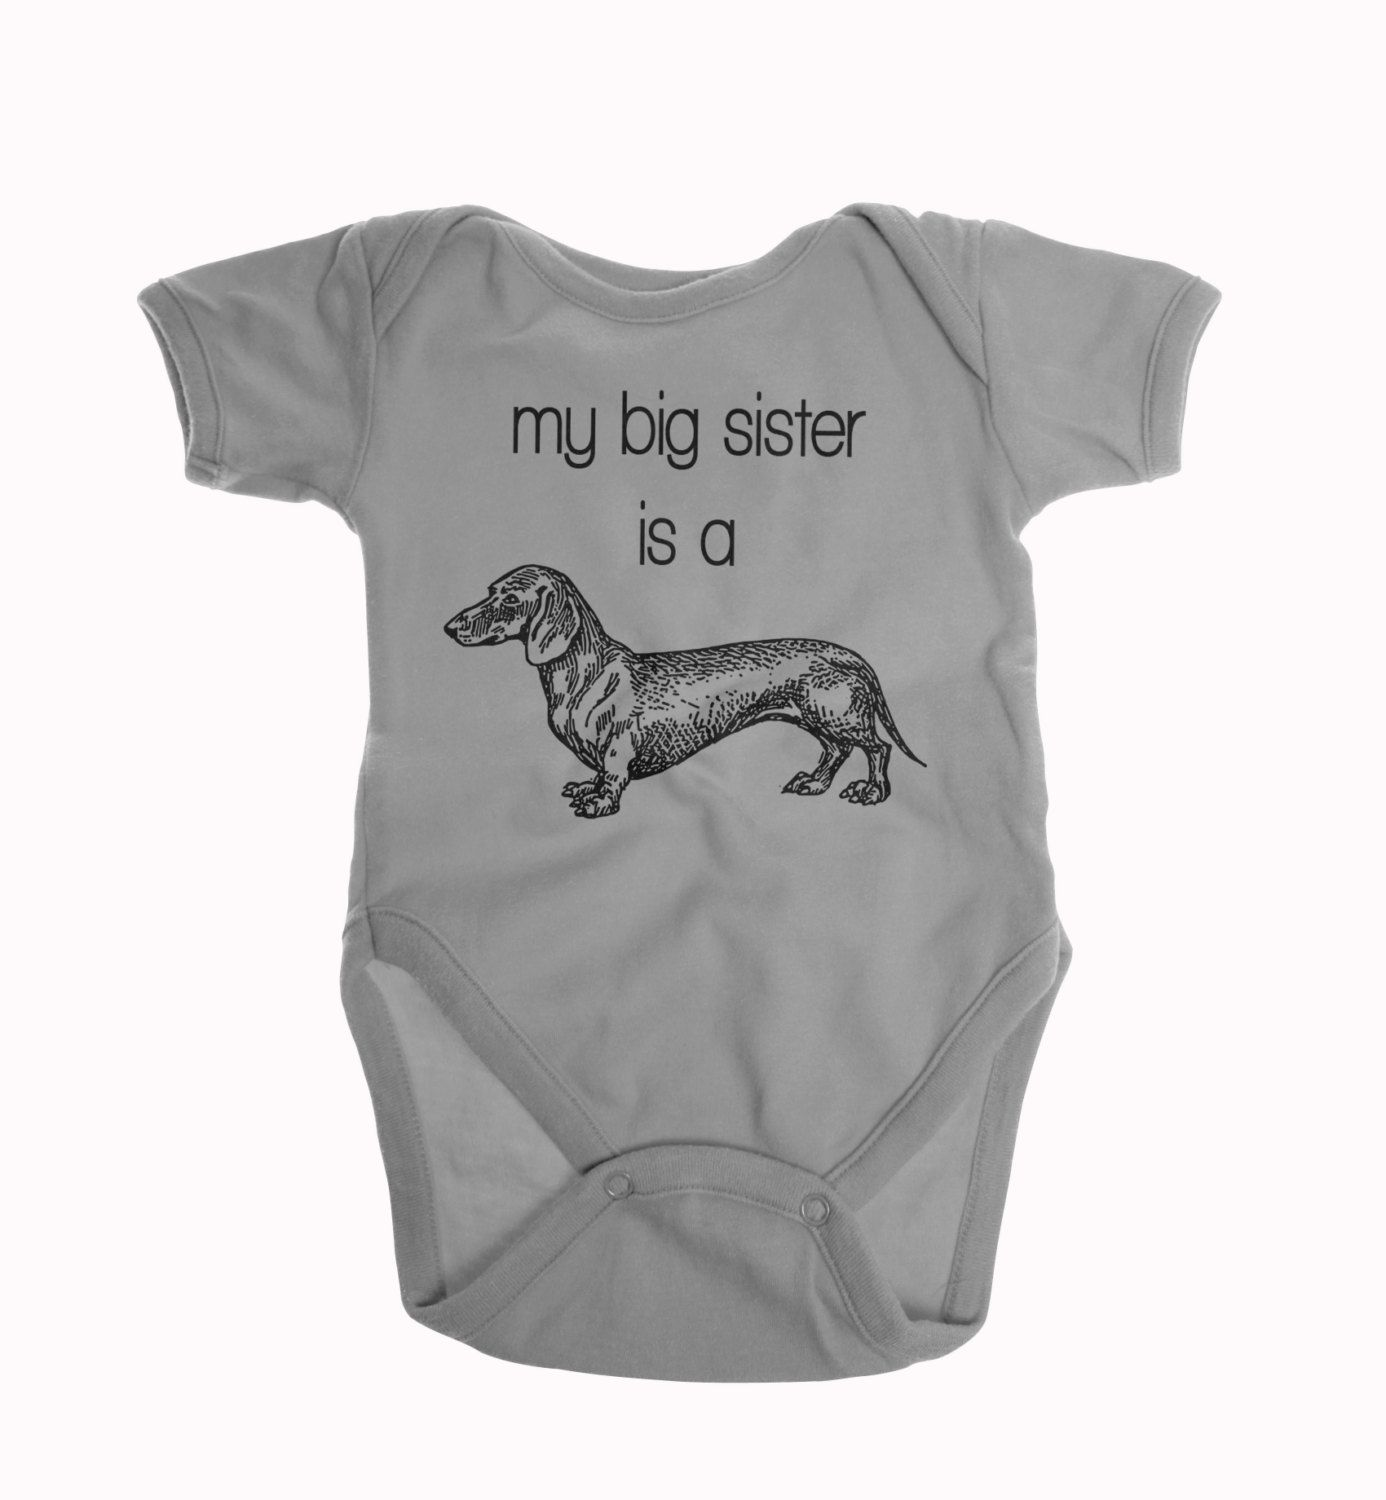 30b7156c5 My Big Sister is a Dachshund, Dachshund Baby Clothes, Big Sister Shirt, Dog  and Baby, Dog Baby Clothes, Big Sister Dog, Gender Neutral Baby by  BurpsandGrrs ...